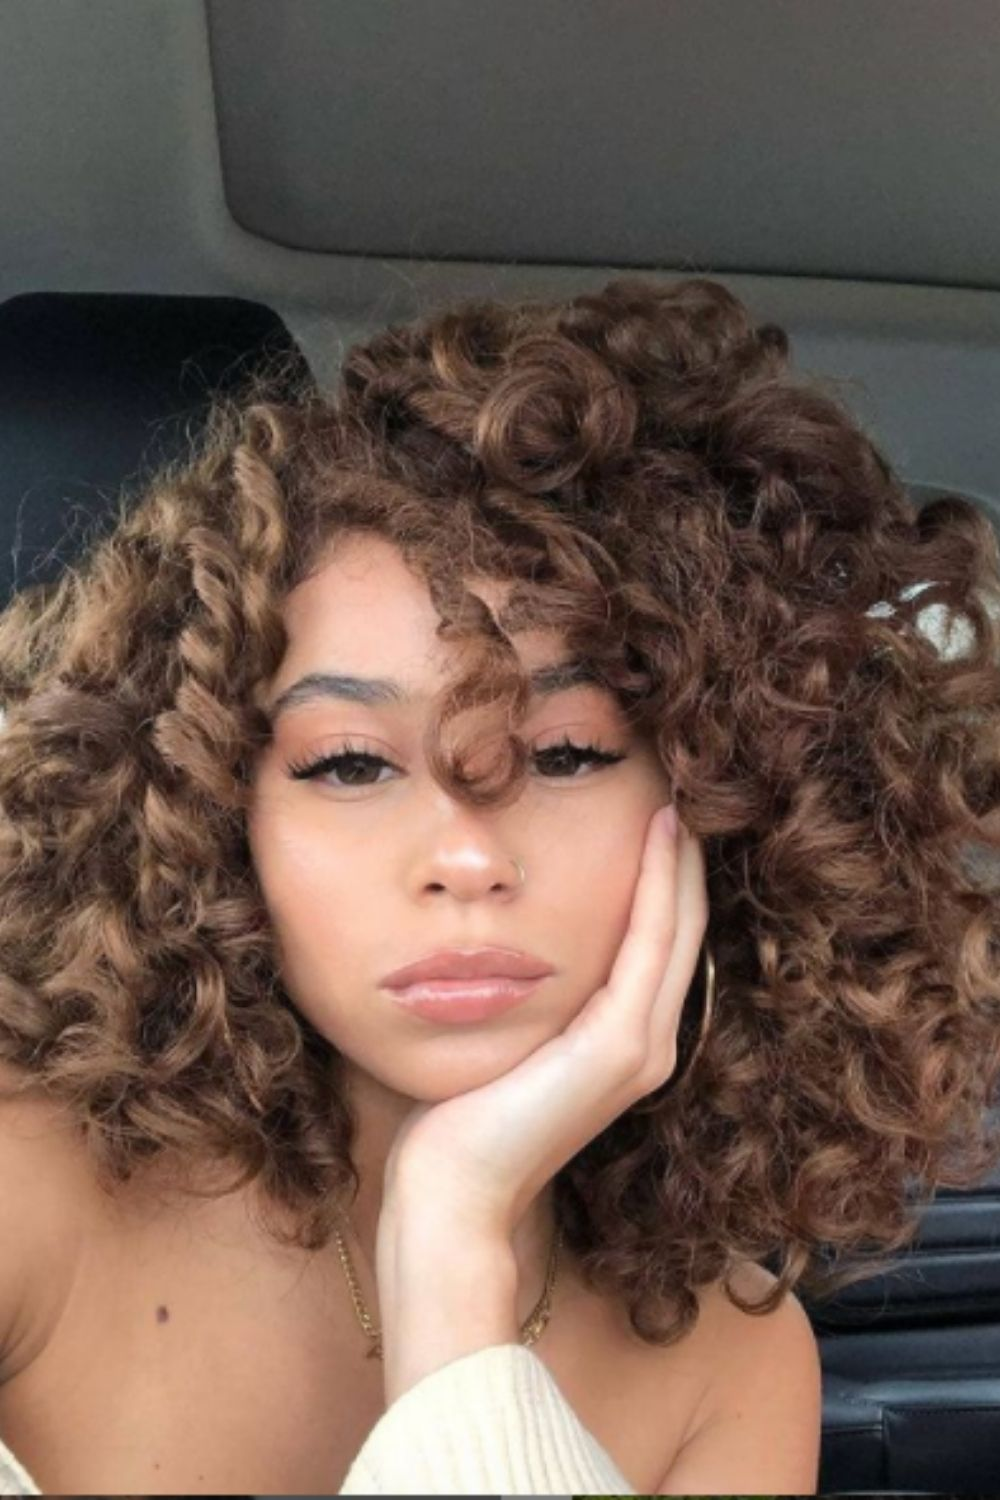 What Hairstyles Go With Short Curly Hairstyle?